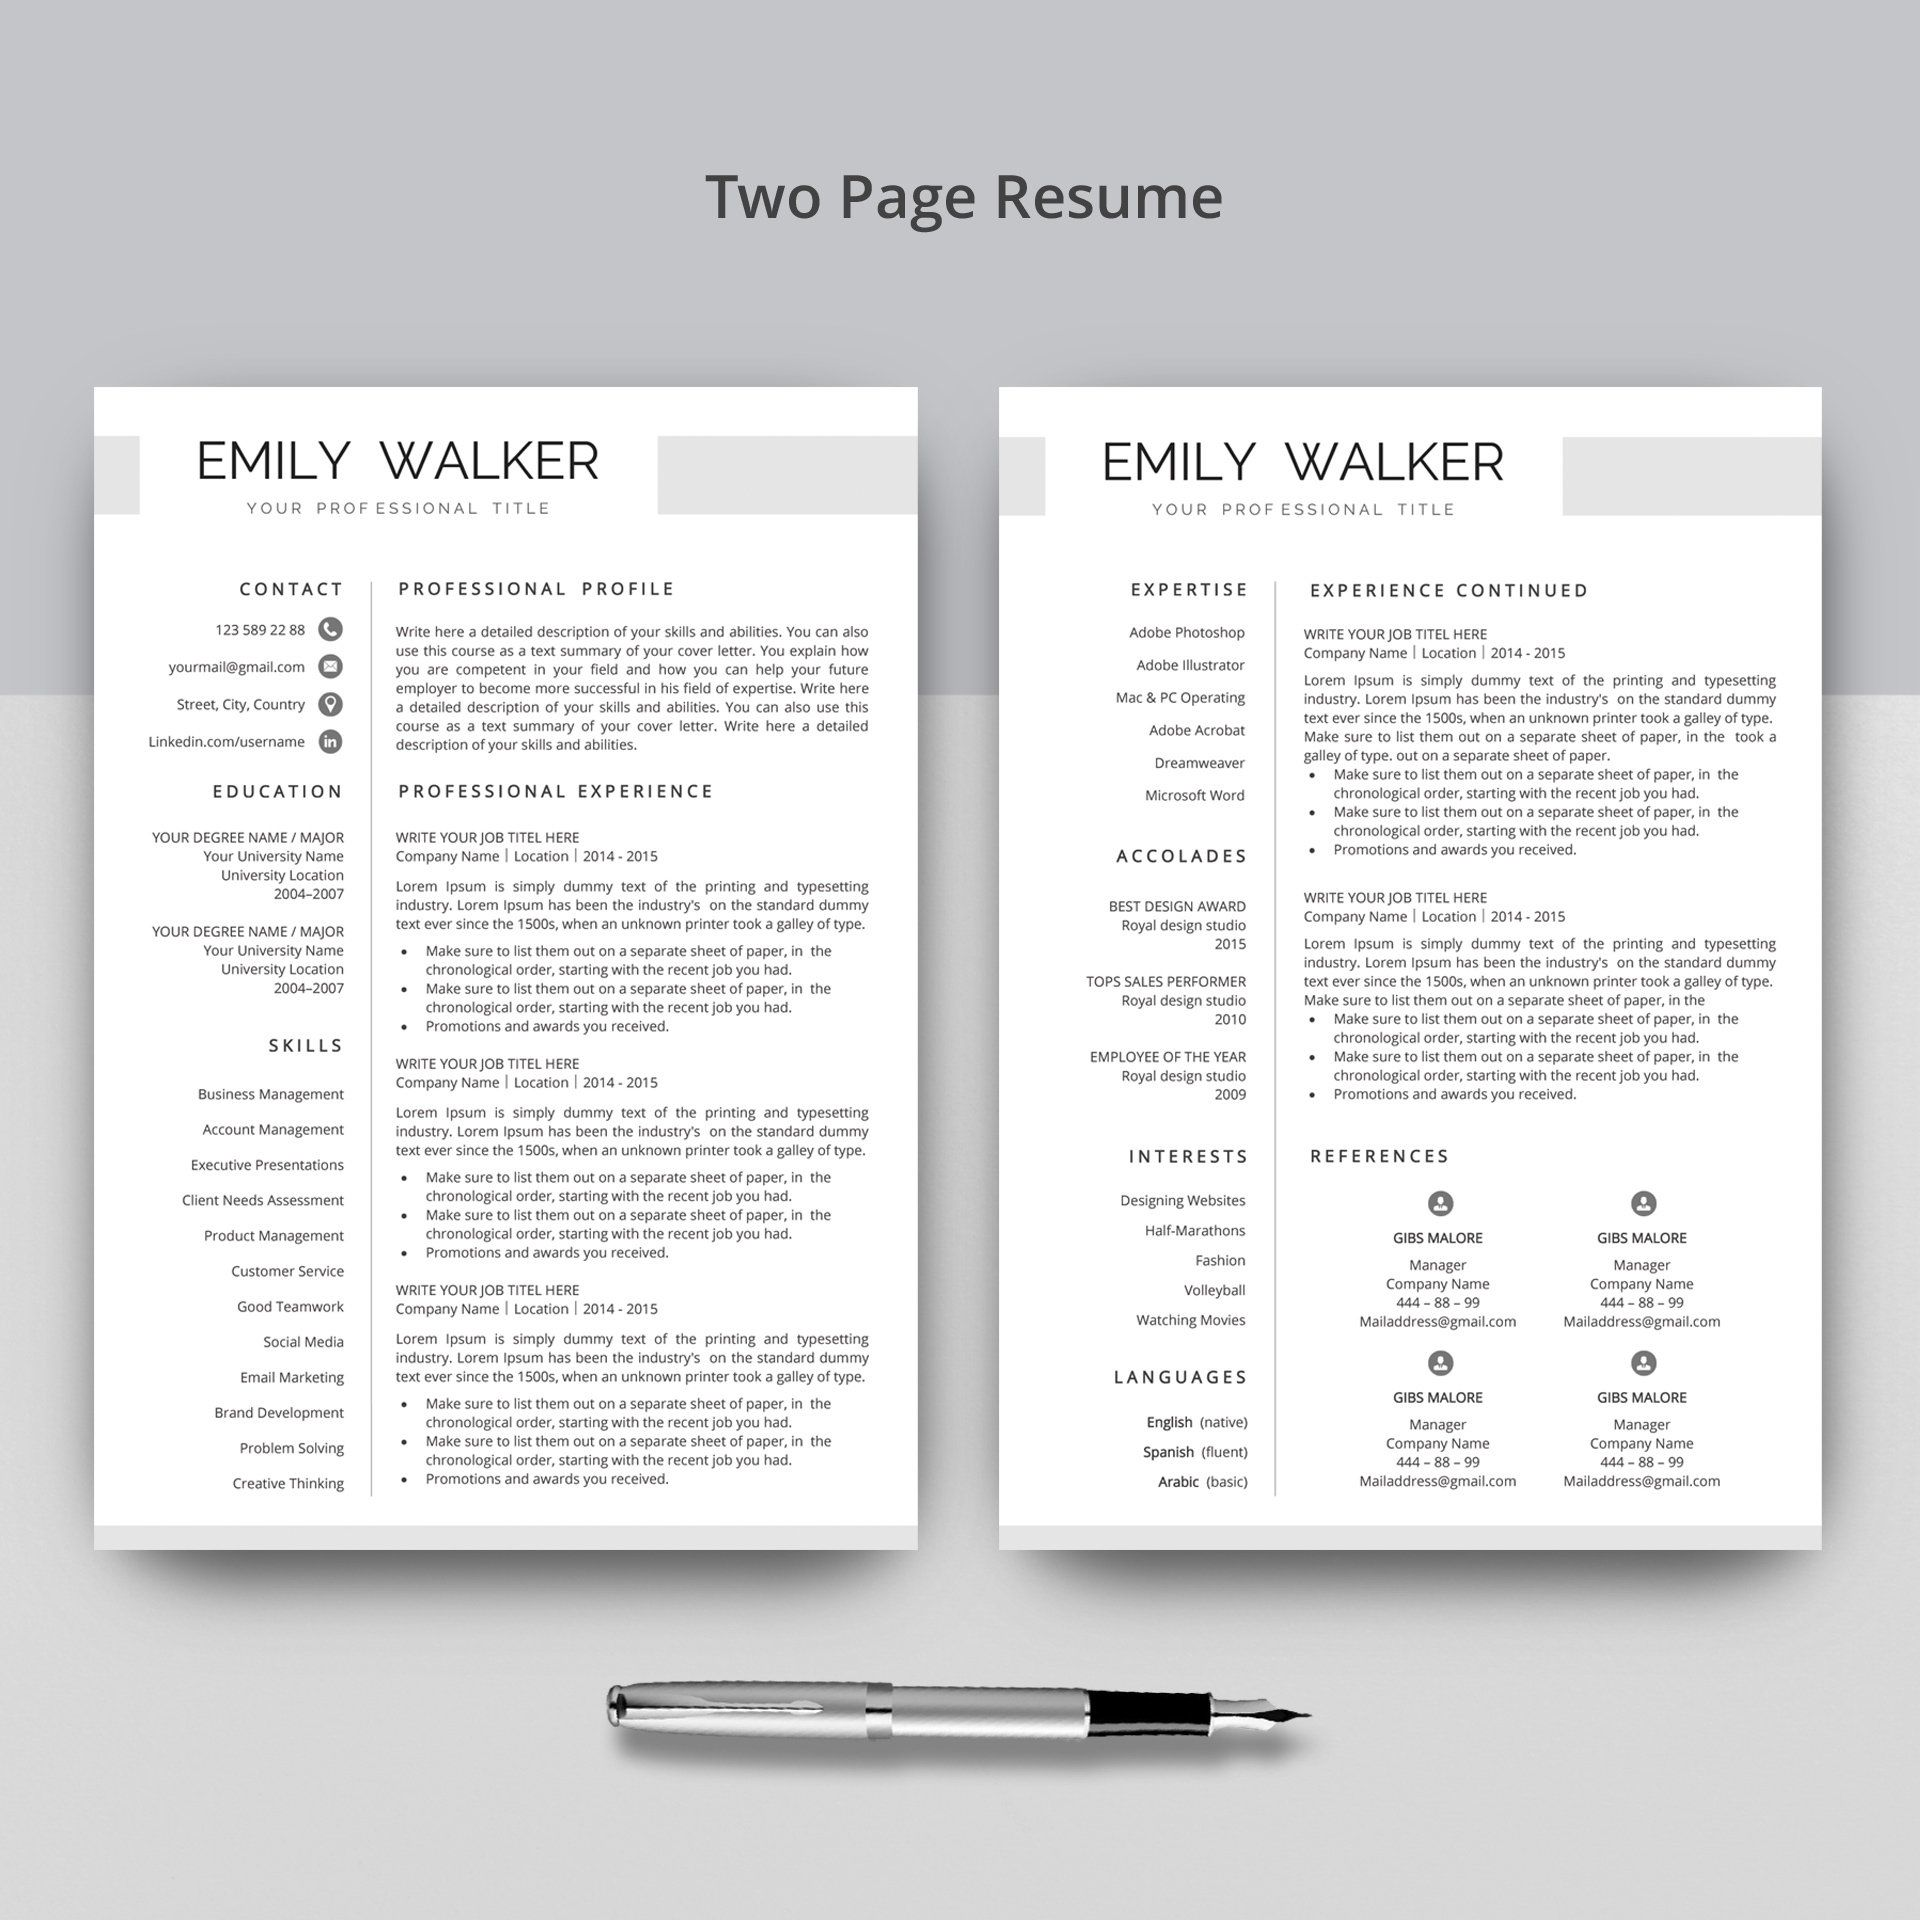 creative resume template for word + free cover letter warehouse administrative assistant curriculum vitae ms new model format download